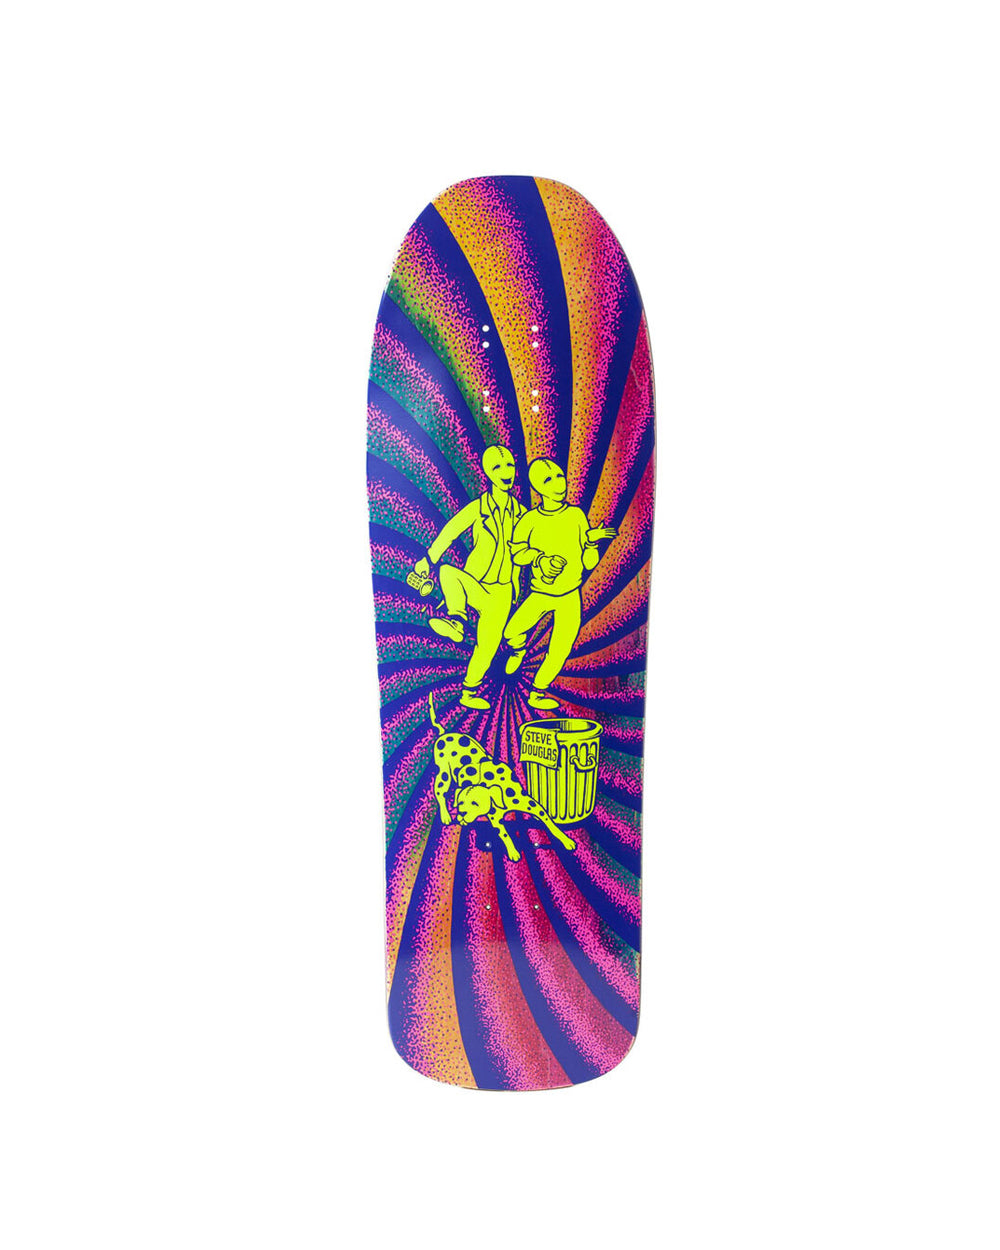 New Deal Douglas Chums Neon Skateboard Deck - Threadbox